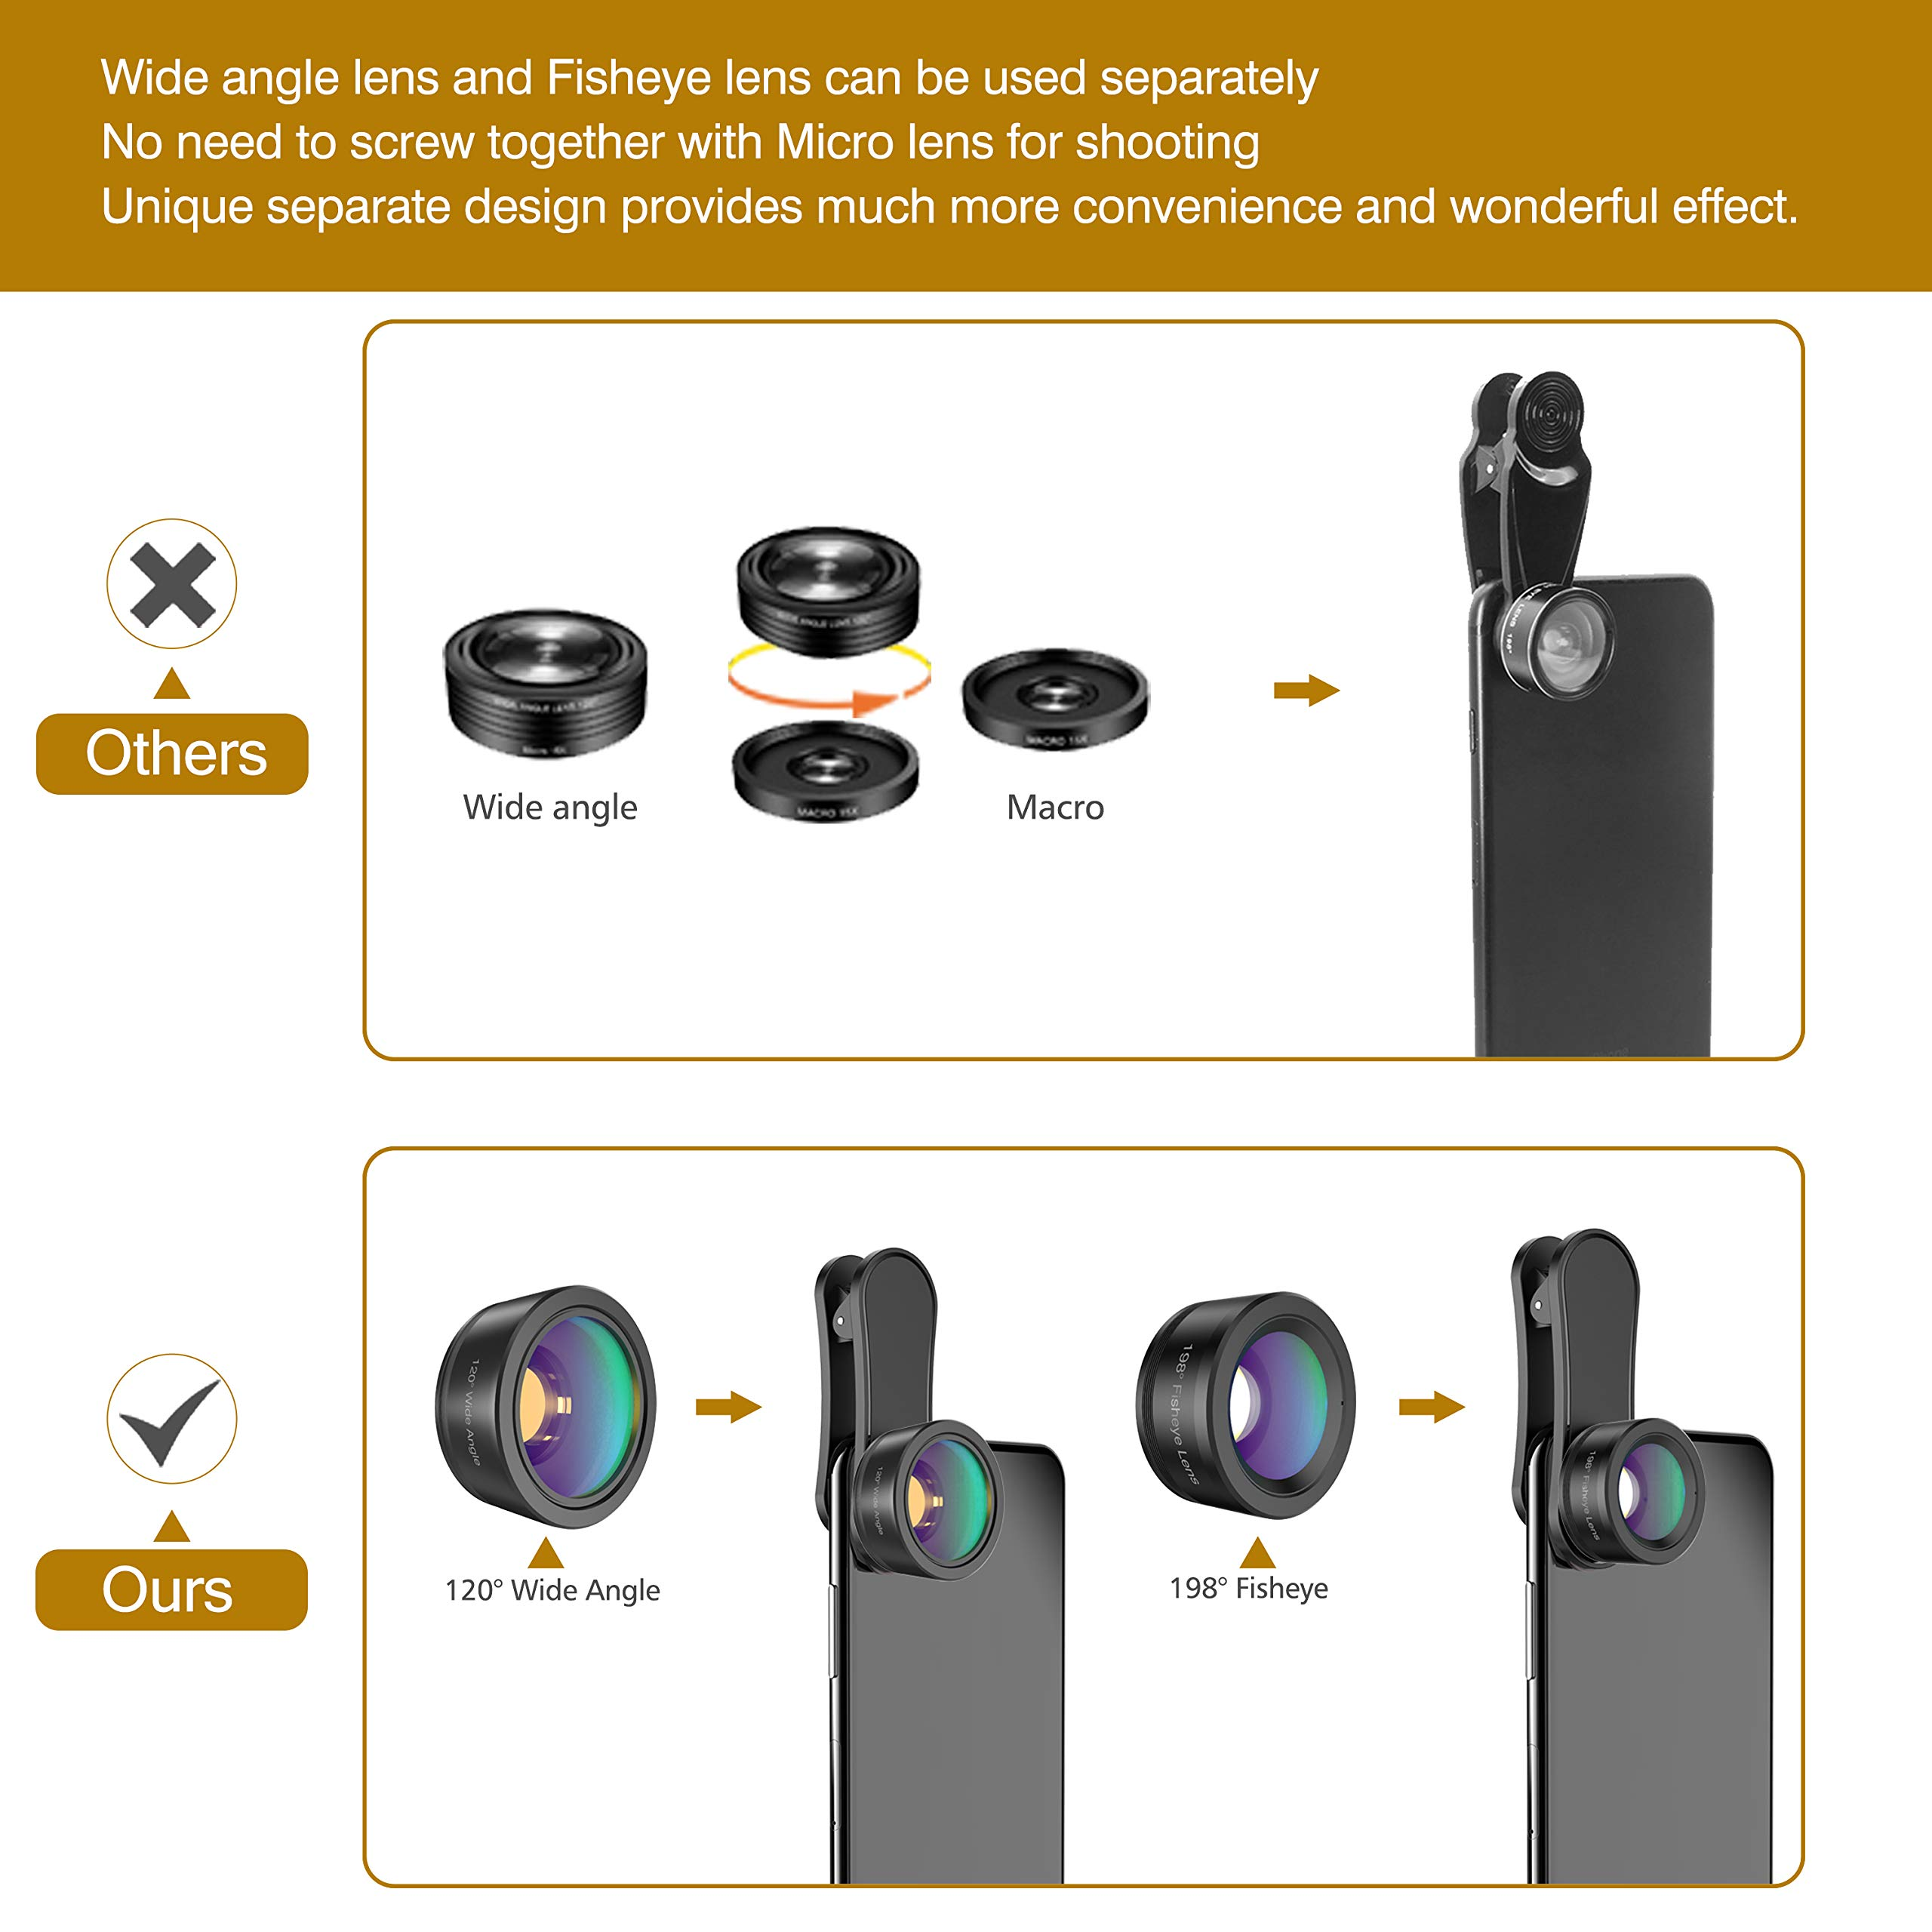 Phone Camera Lens,Upgraded 3 in 1 Phone Lens kit-198° Fisheye Lens + 20X Macro Lens + 120° Wide Angle Lens,Clip on Cell Phone Lens Kits Compatible with iPhone,iPad,Most Android Phones and Smartphones by LEKNES (Image #3)